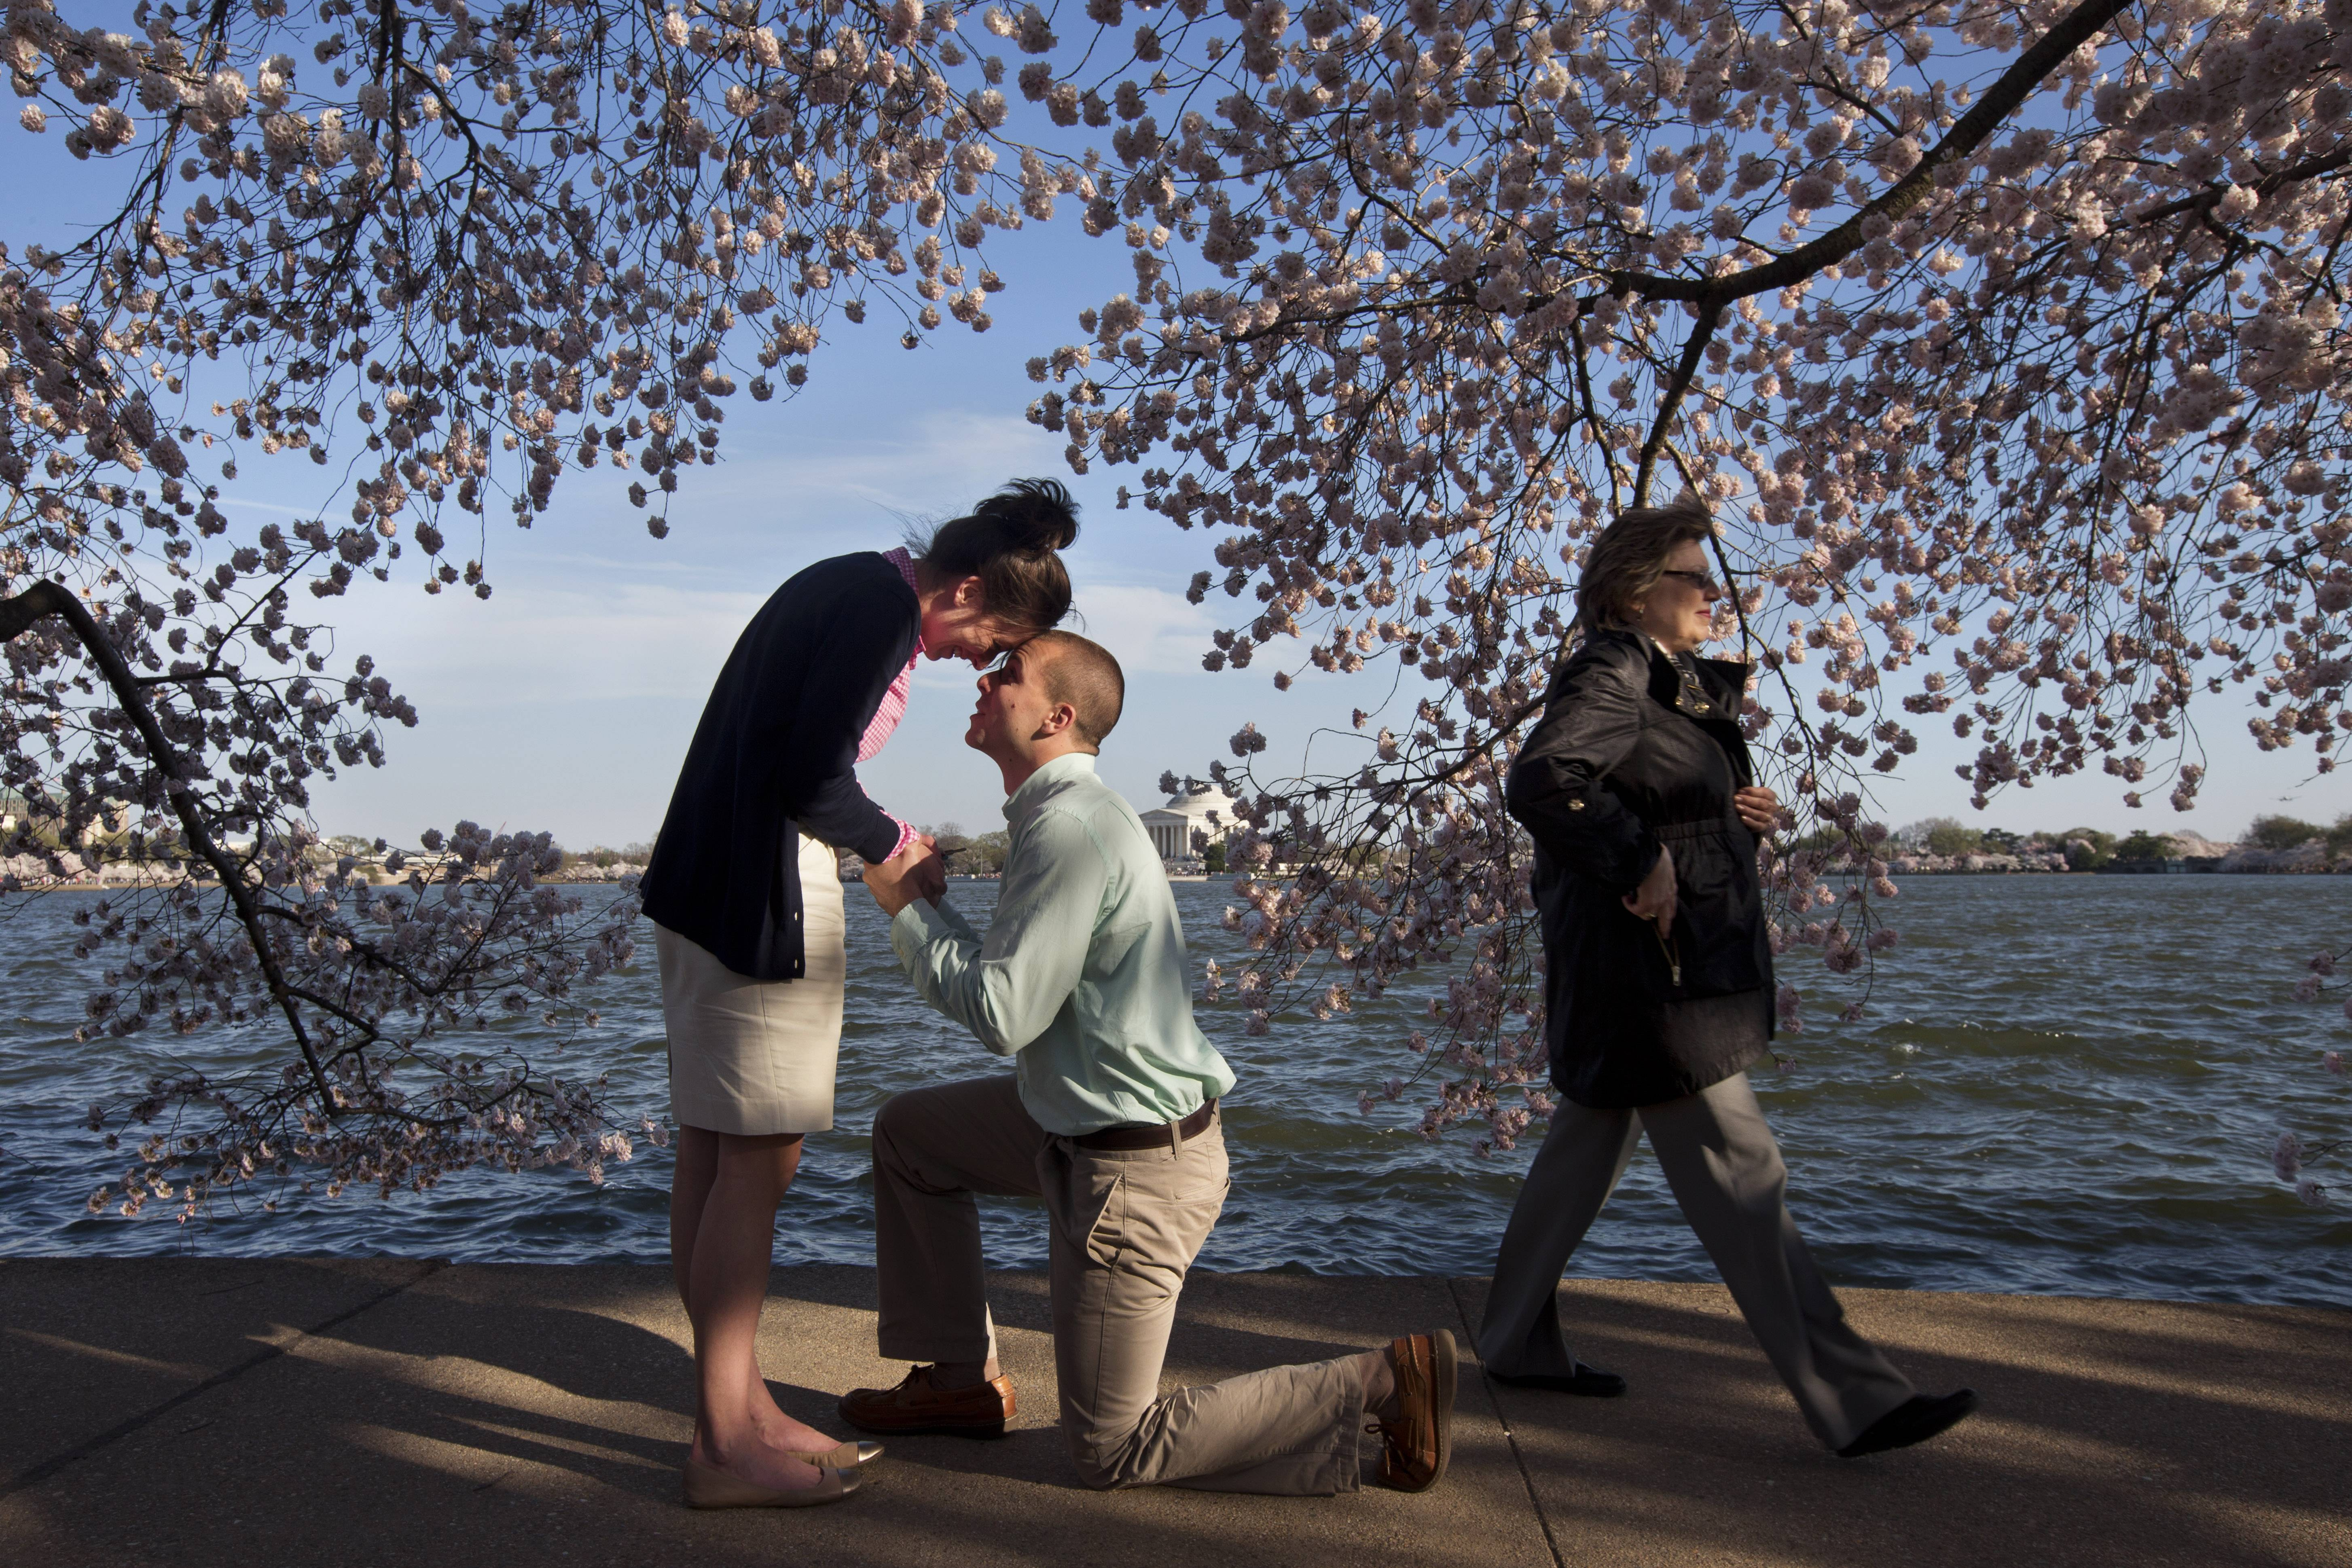 Steven Paska, 26, center, of Arlington, Va., asks his girlfriend of two years, Jessica Deegan, 27, to marry him as cherry blossom trees in peak bloom line the tidal basin with the Jefferson Memorial in the background in Washington. Deegan said yes to the surprise marriage proposal. When it comes to dating, Americans' attitudes toward money and gender roles hew to the traditional and sometimes conflict.